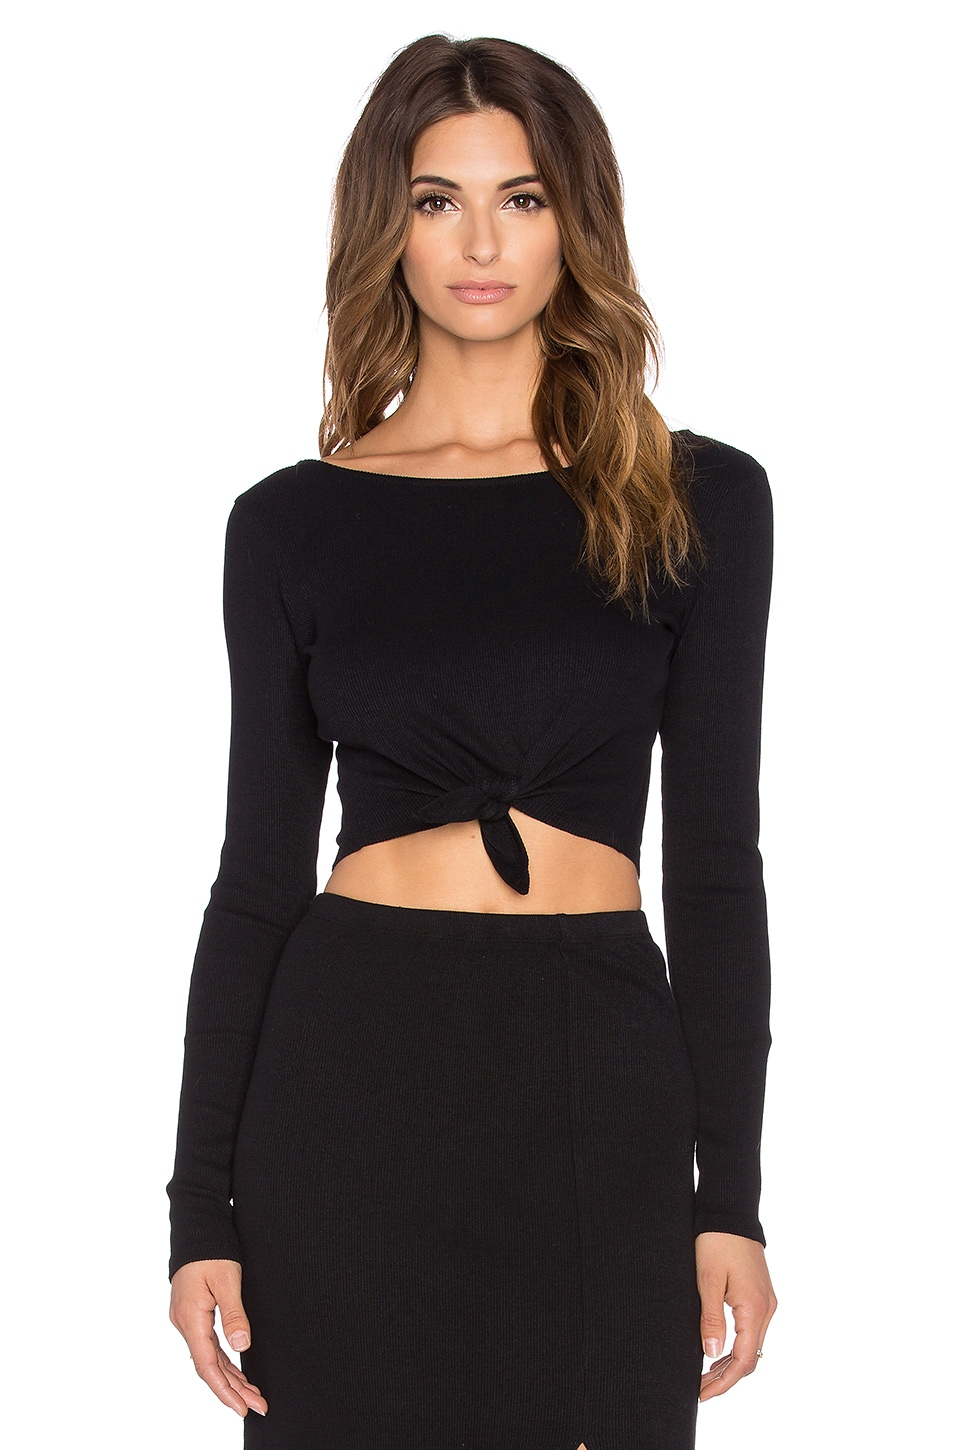 AMUSE SOCIETY Brady Tie Front Crop Top in Black Sands